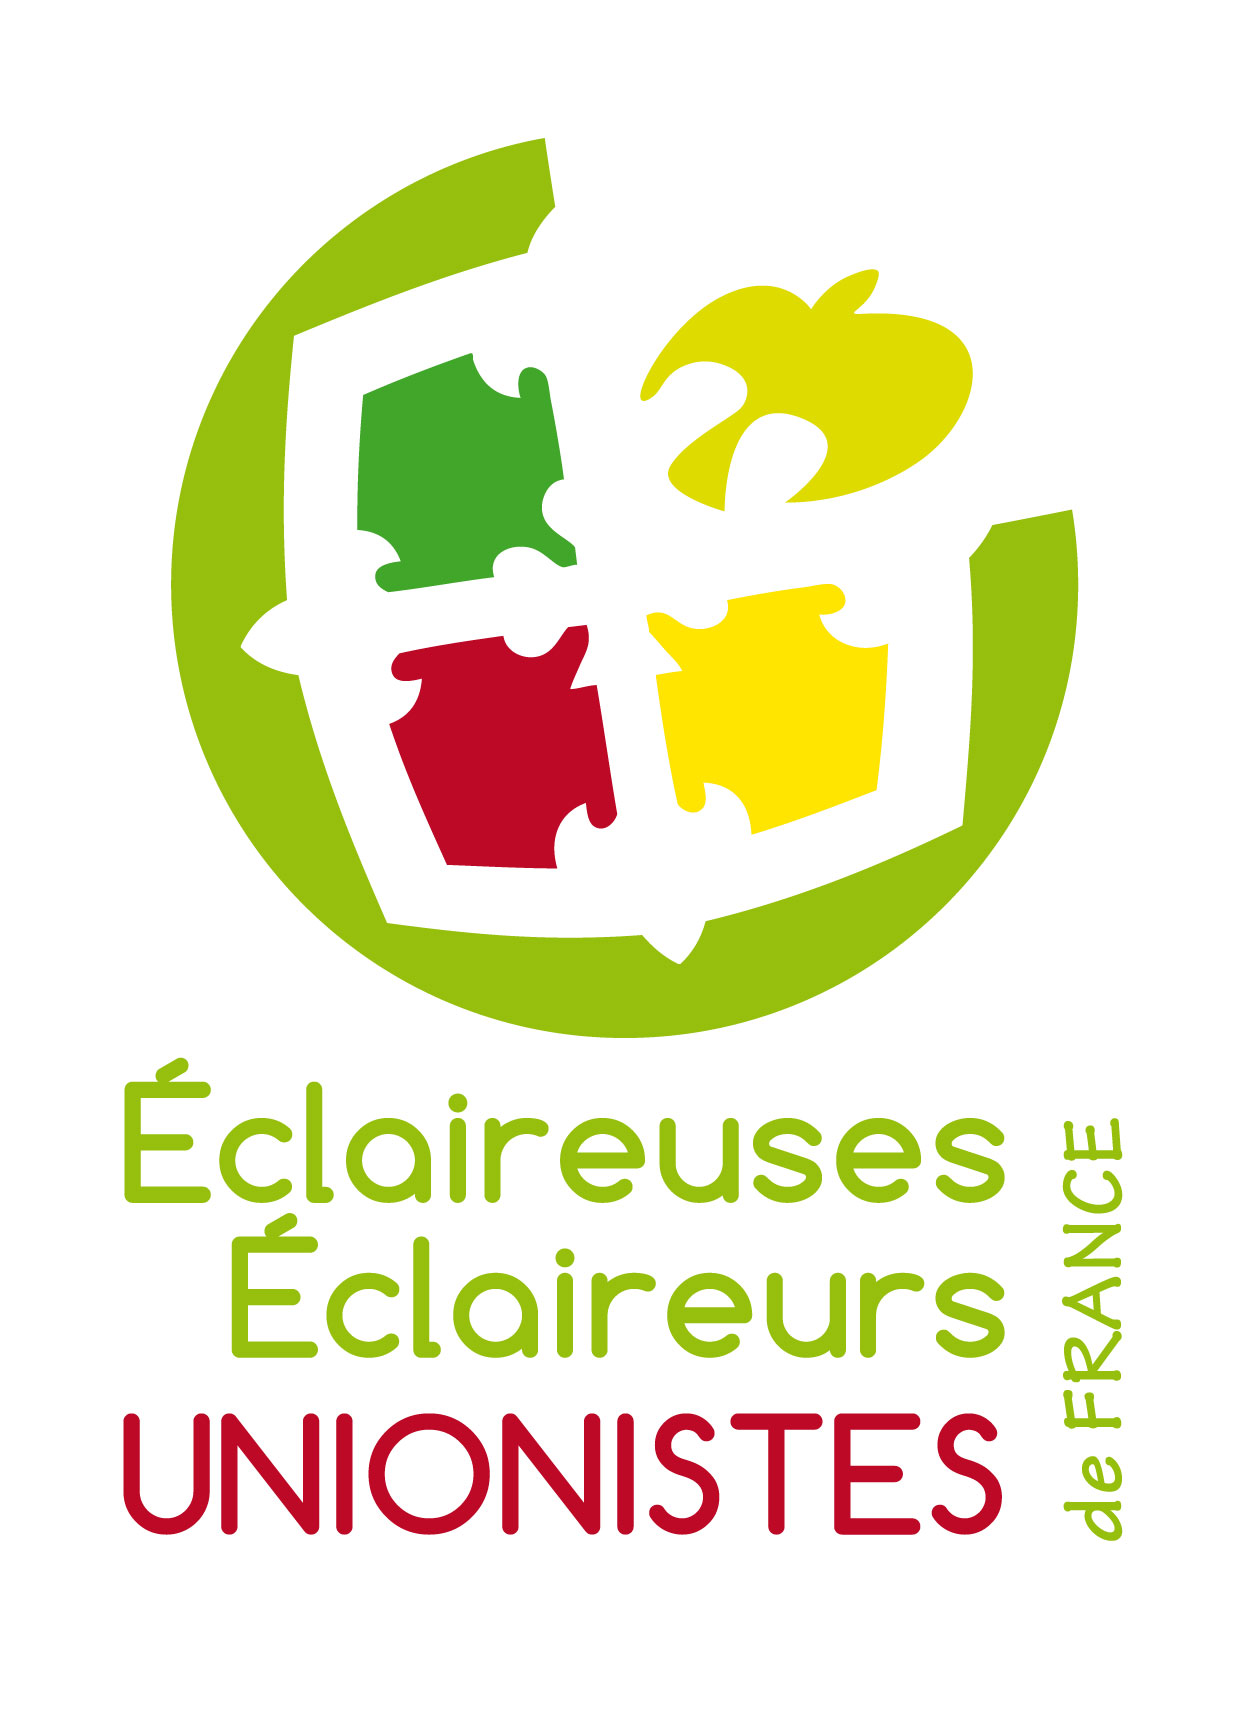 http://bibli.eeudf.org/wp-content/uploads/2014/07/logo-eeudf-coul.jpg